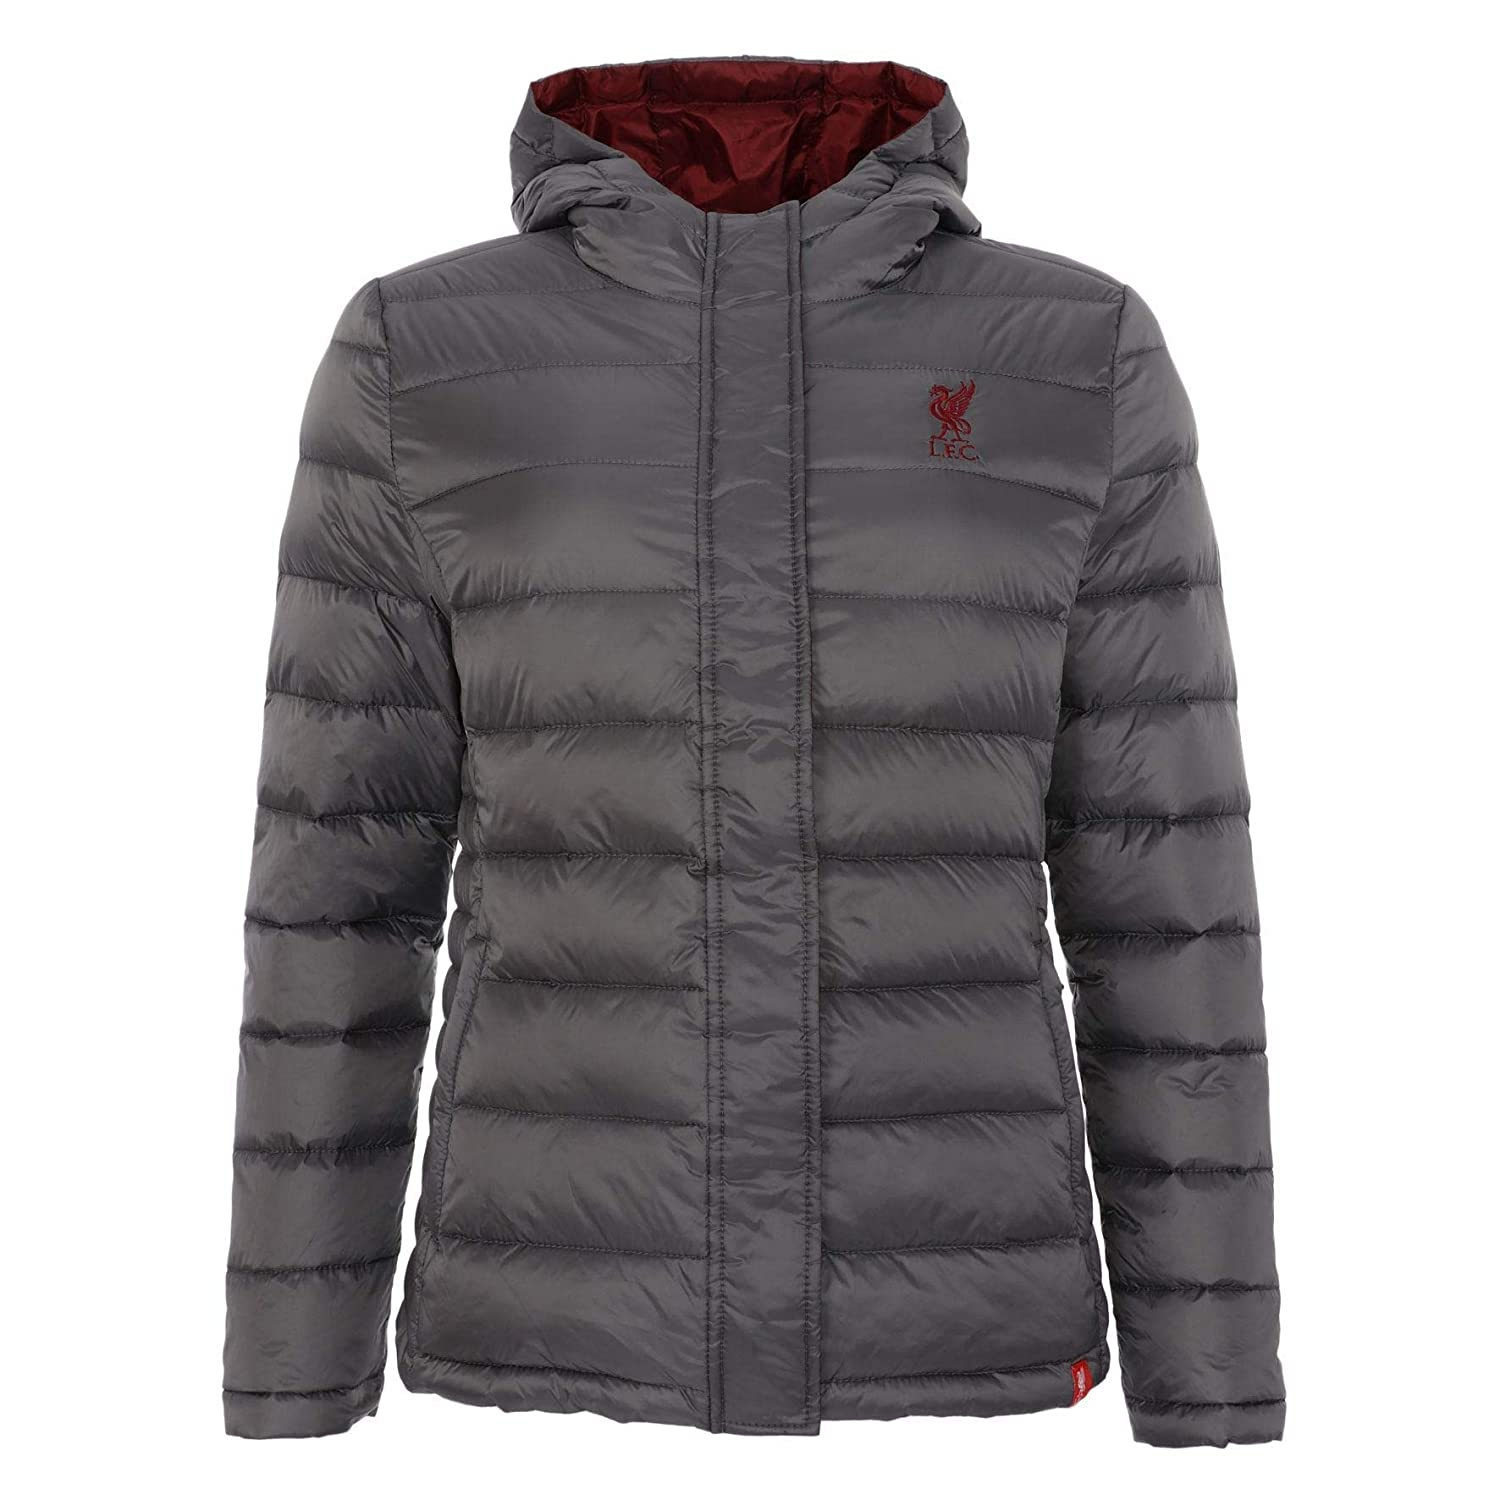 Liverpool FC Grey Womens Downfill Jacket Charcoal AW 18 19 LFC Official